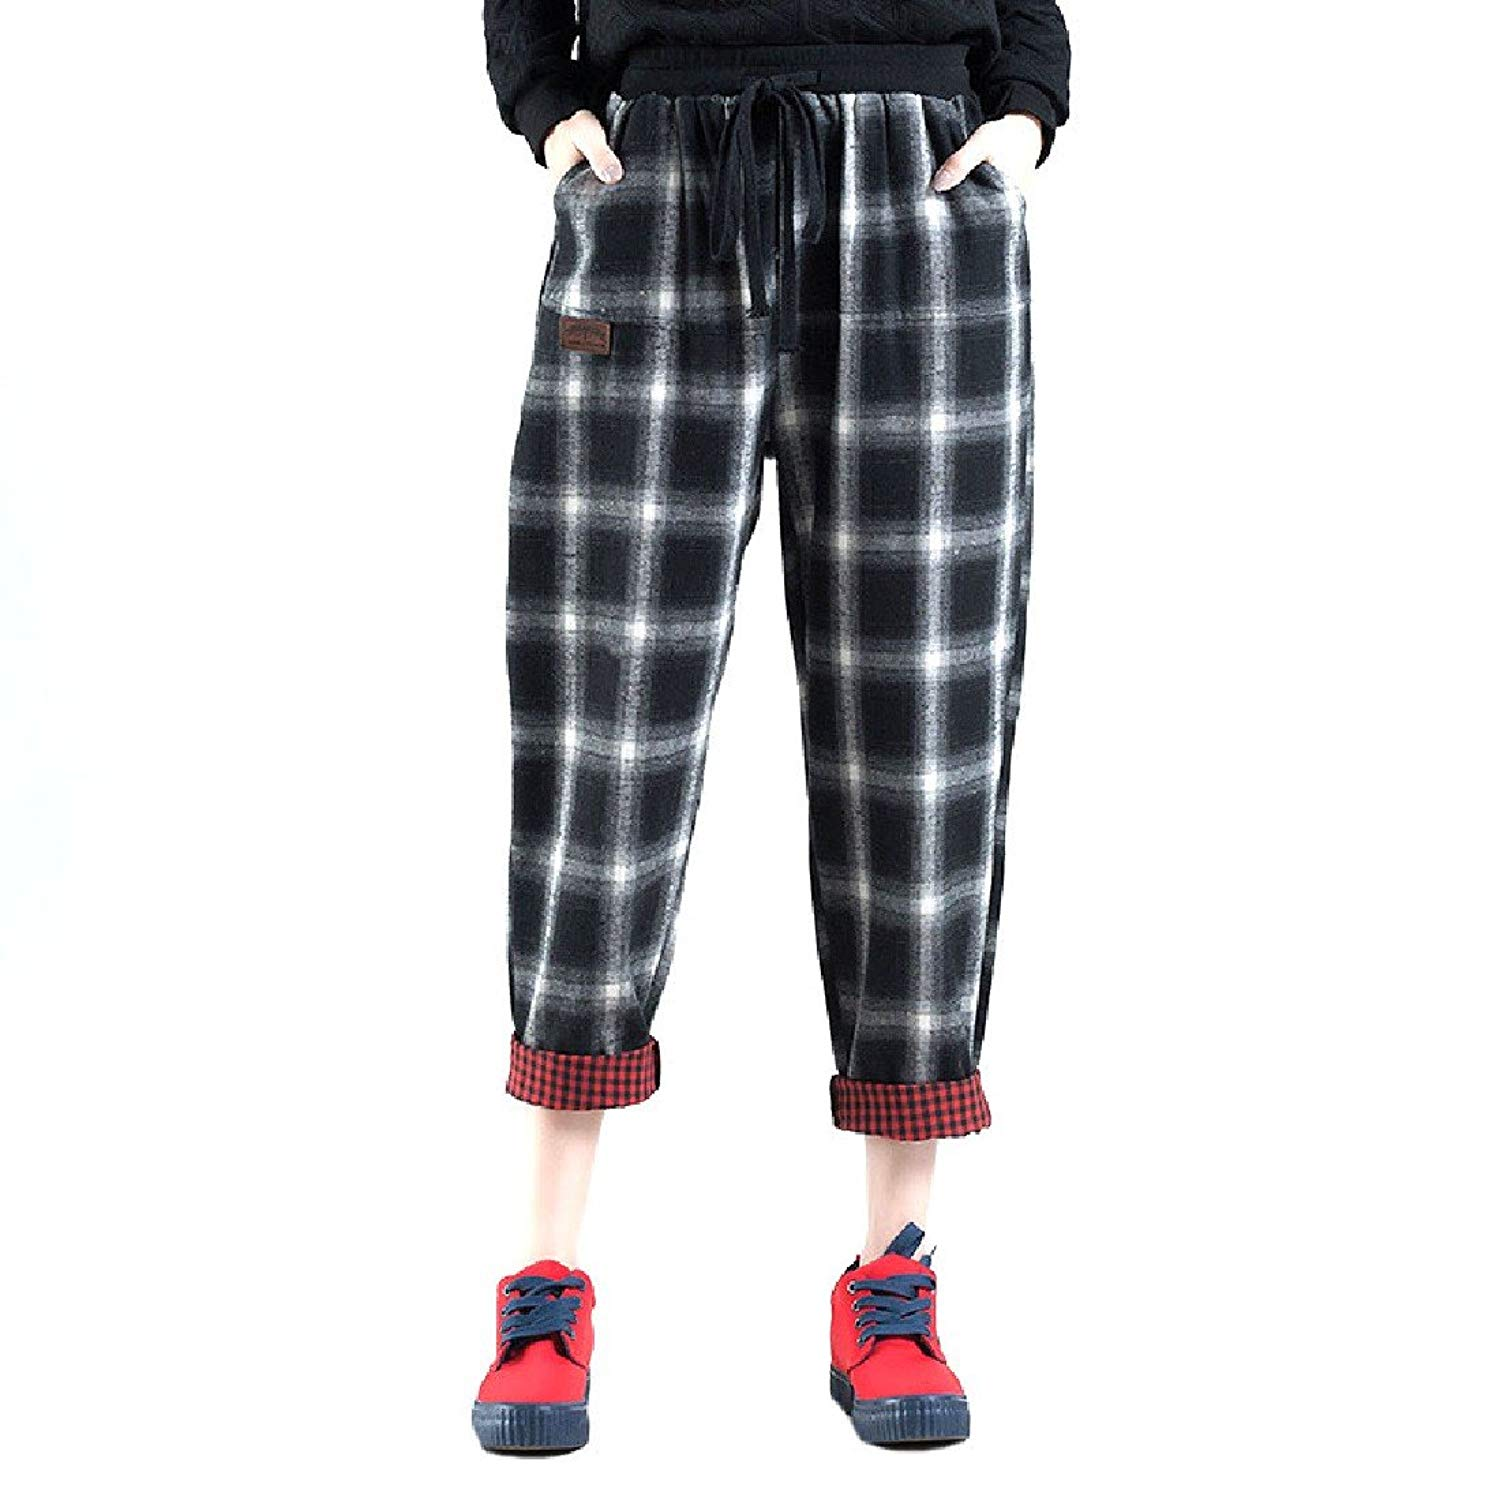 ccb333e30df9 Get Quotations · Zimaes-Women Plaid Baggy Long Pants All-Match Leisure  Cargo Pants